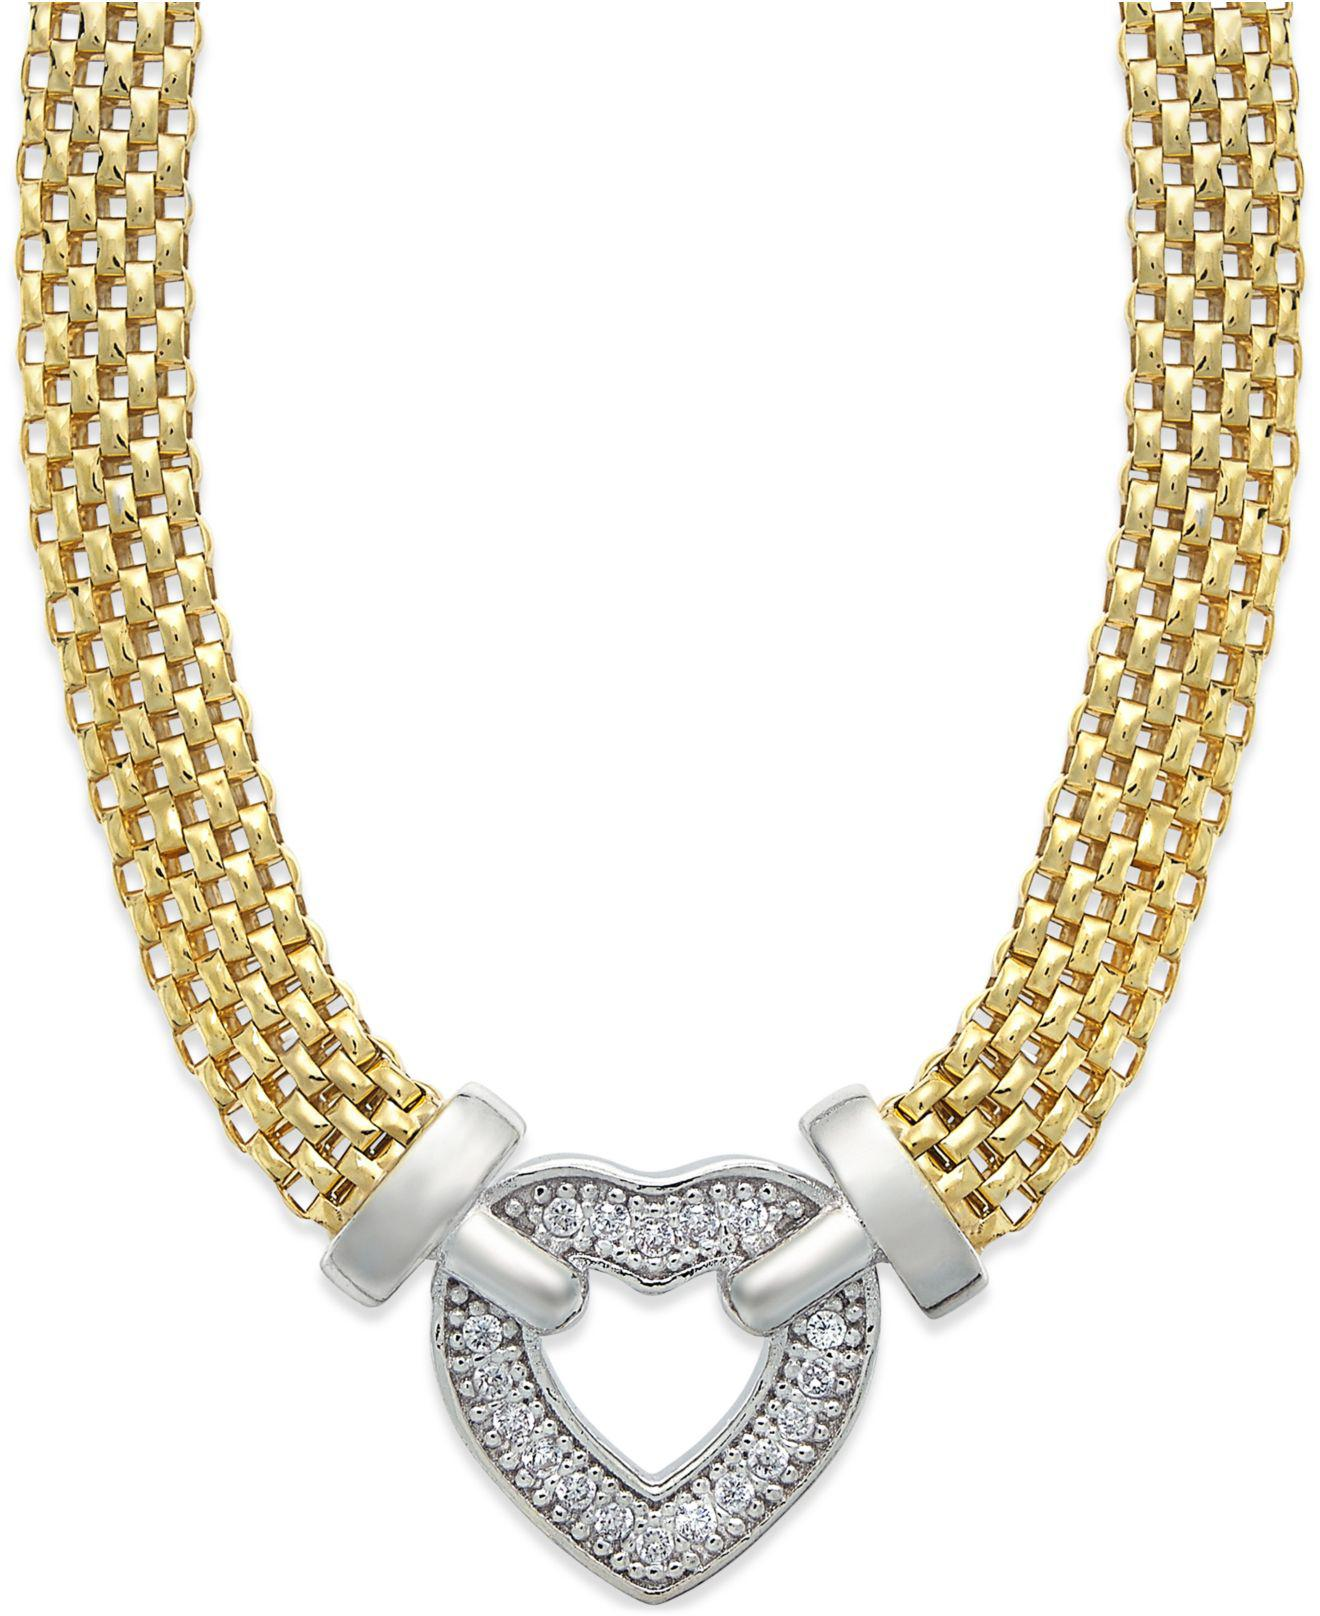 daf147289 Macy's. Women's Metallic Diamond Heart Necklace In 14k Gold Vermeil And  Sterling Silver (1/10 Ct. T.w.)